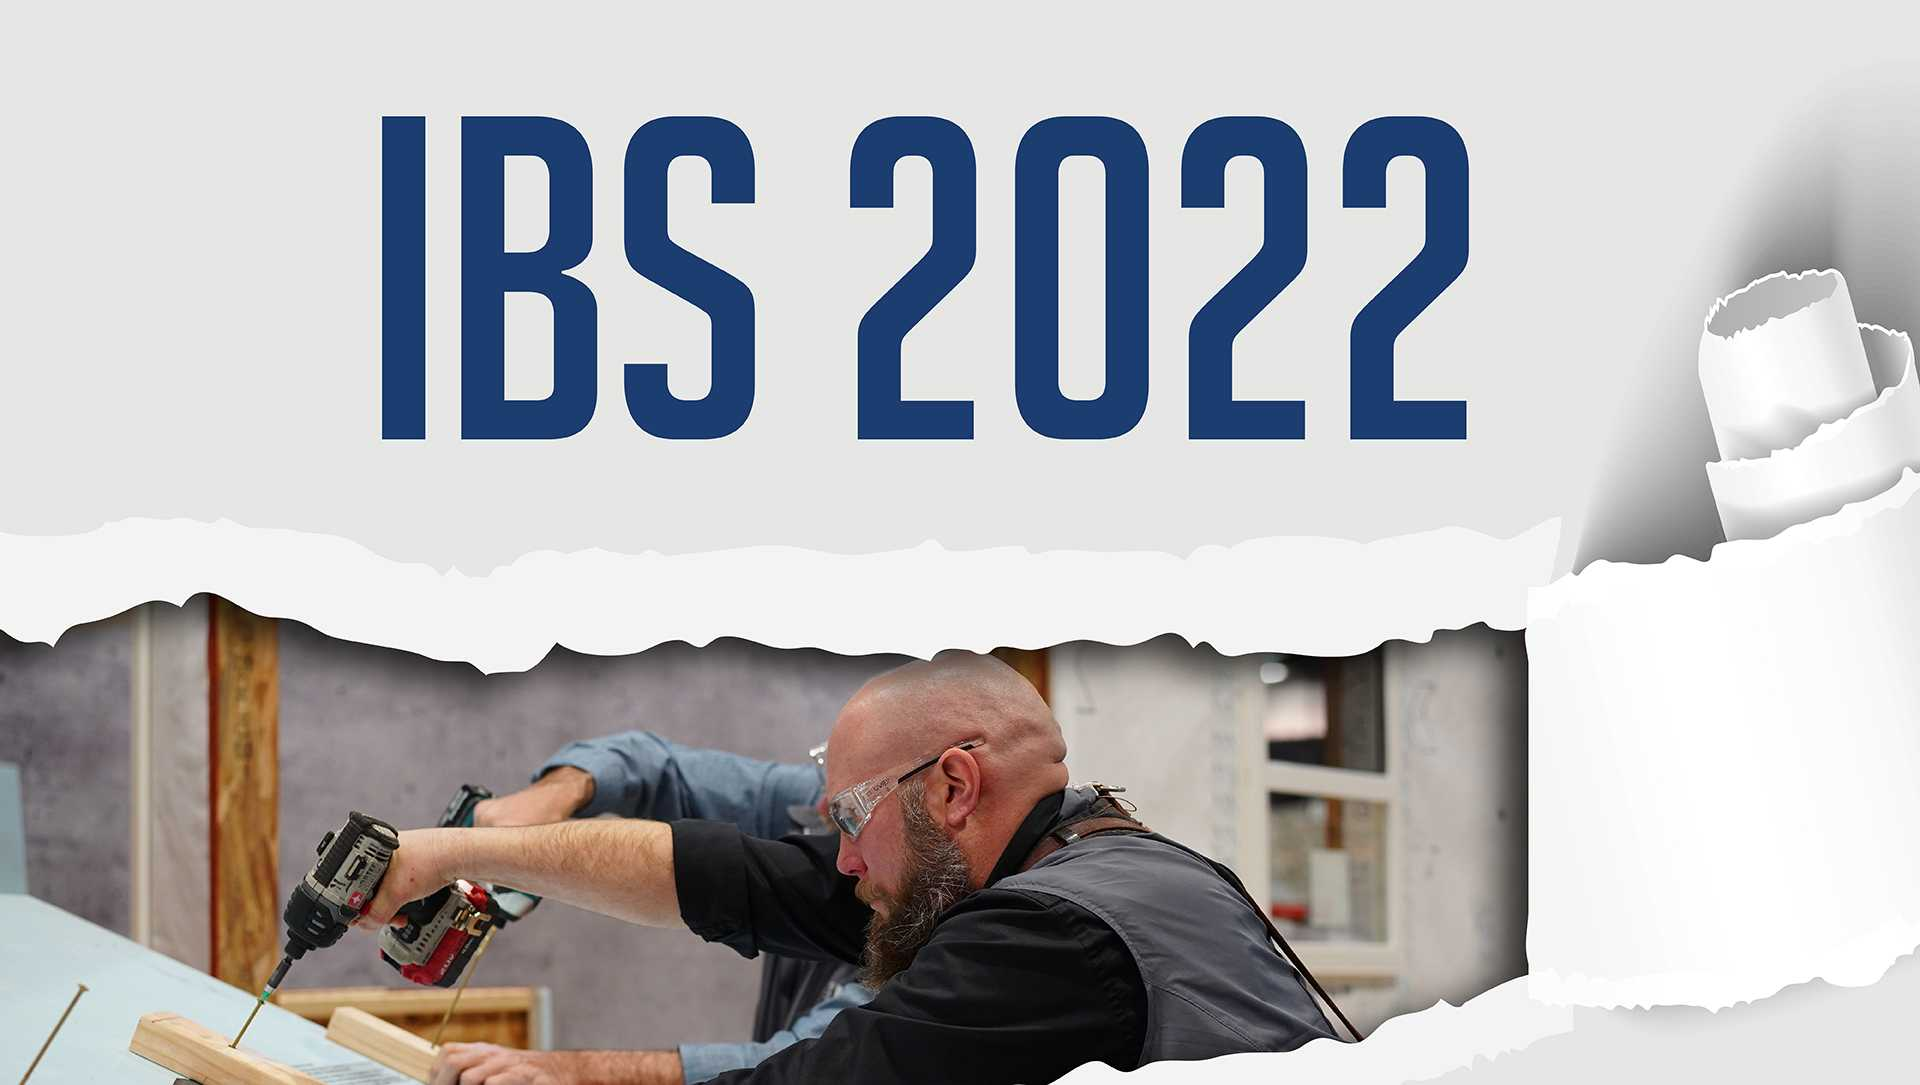 IBS 2022, Sign up for updates